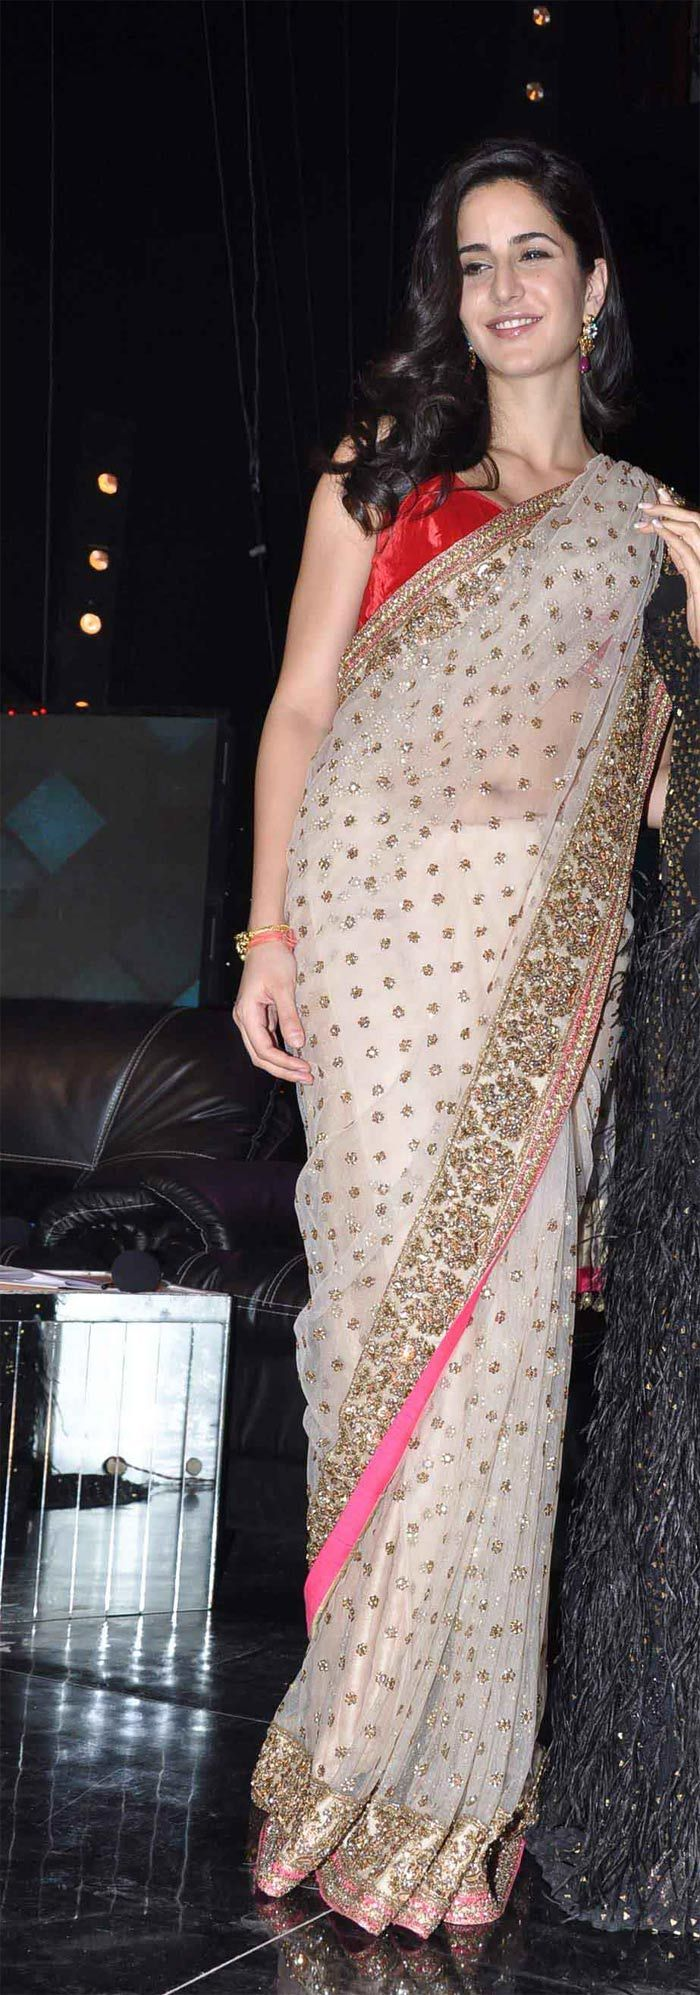 Katrina Kaif, Jab Tak Hai Jaan promotions: Katrina proved that Manish Malhotra outfits aren't the sole preserve of Kareena Kapoor with this lovely embellished sari which she wore to promote her film Jab Tak Hai Jaan at the finale of India's Got Talent in November. Move over, Bebo?